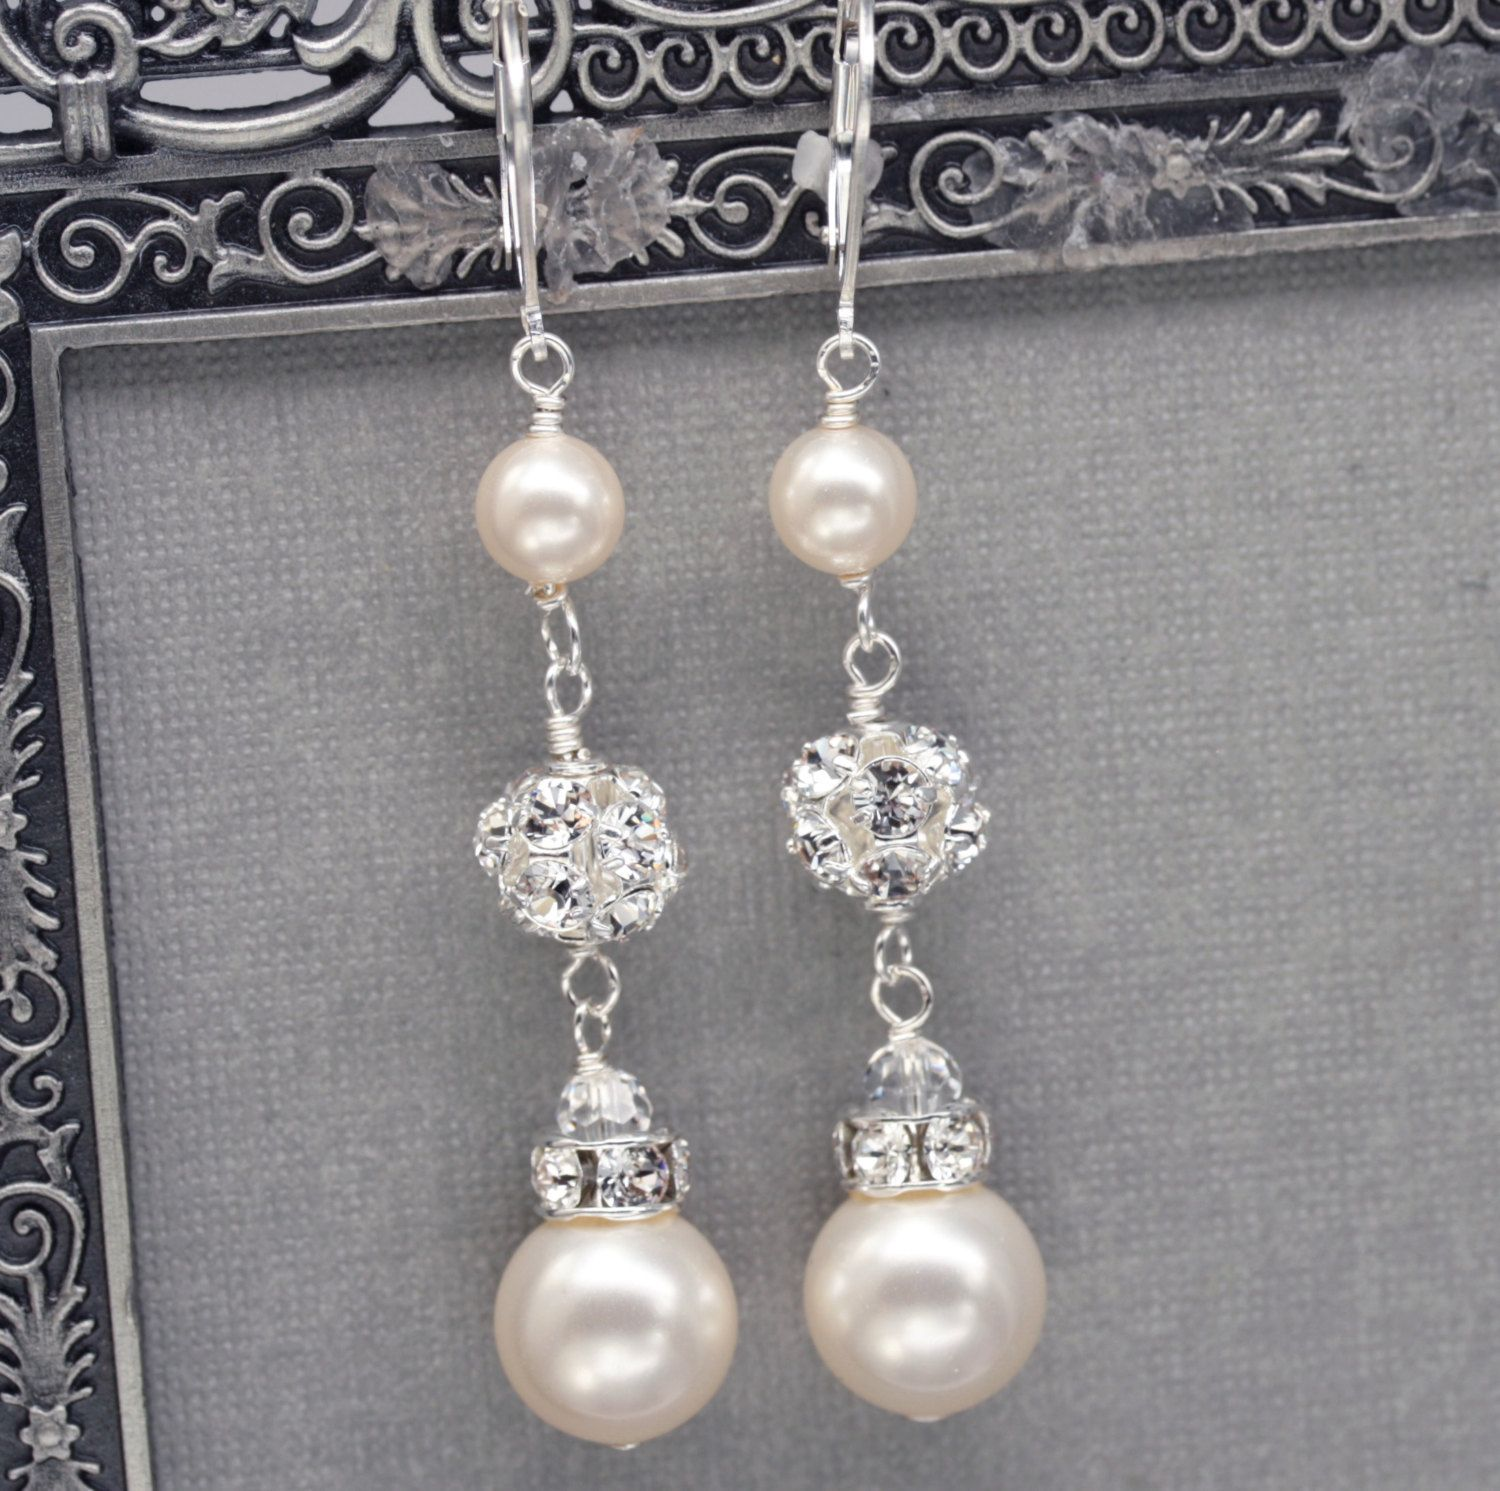 Long Pearl and Rhinestone Dangle Earrings 4f8dde340f5b